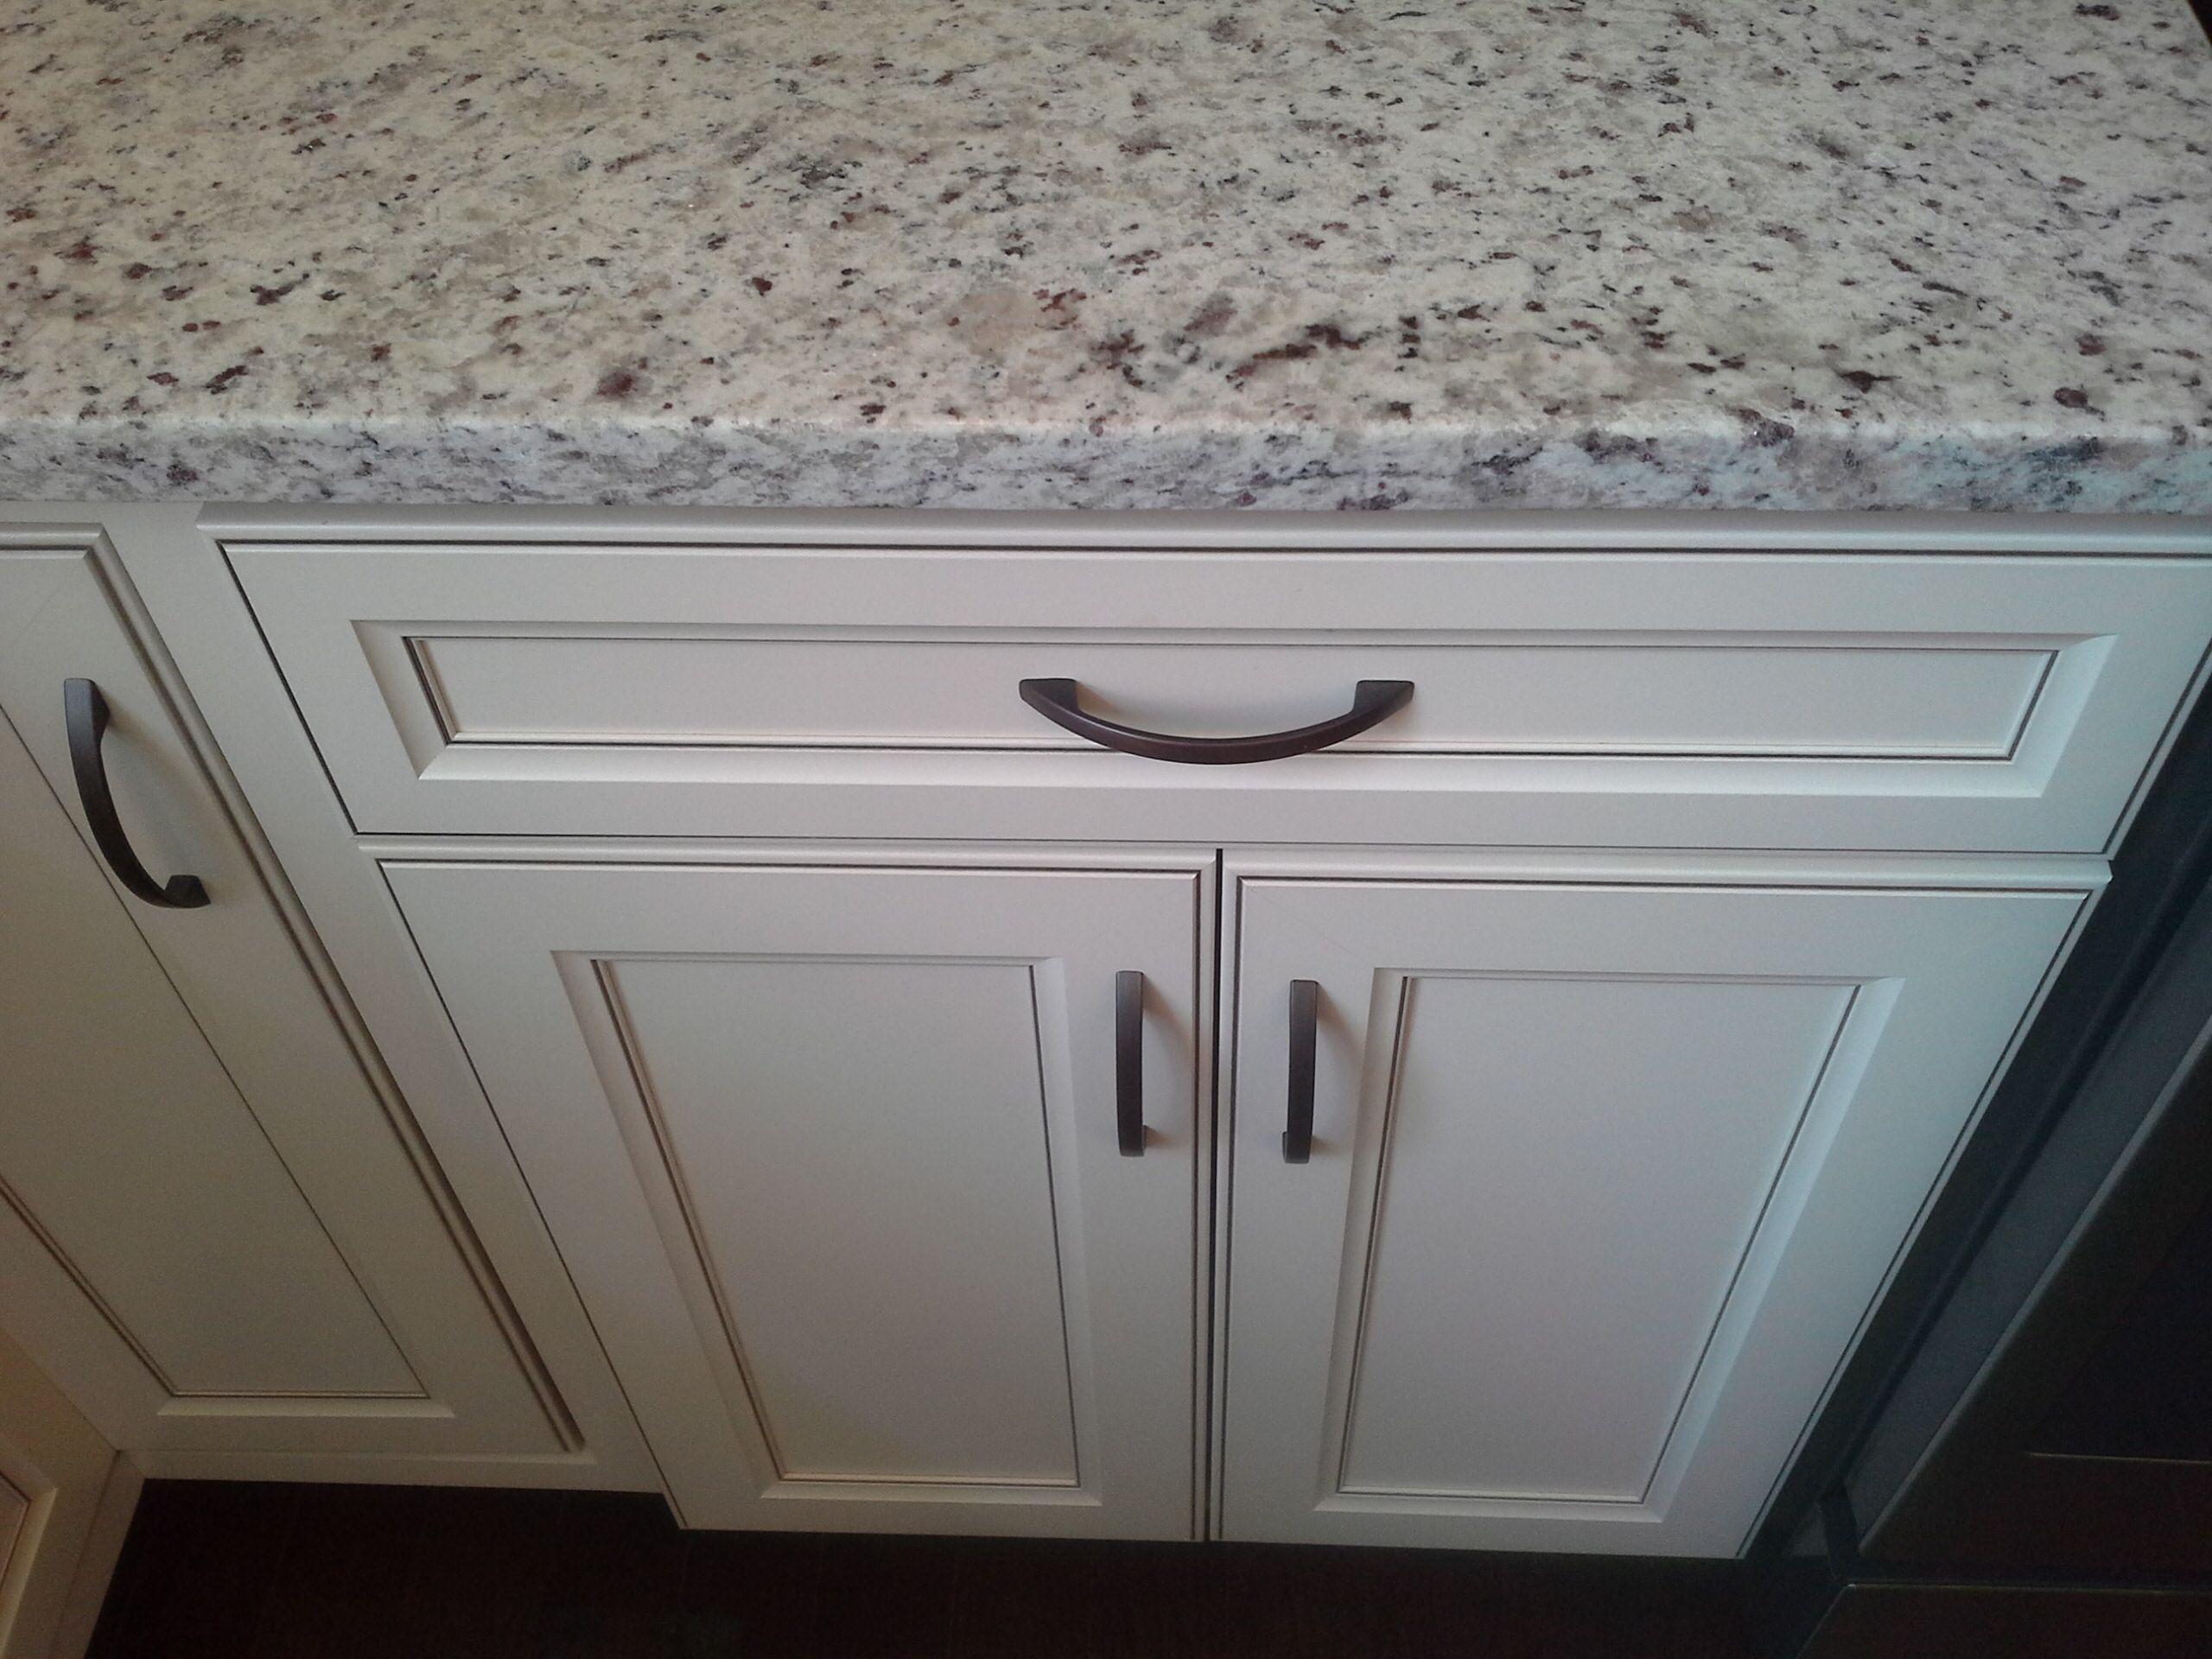 Bon Aristokraft Cabinets Durham Style, Toasted Antique Finish. This Is Arctic  Flower Granite. (Our New House Has Colonial White Granite)